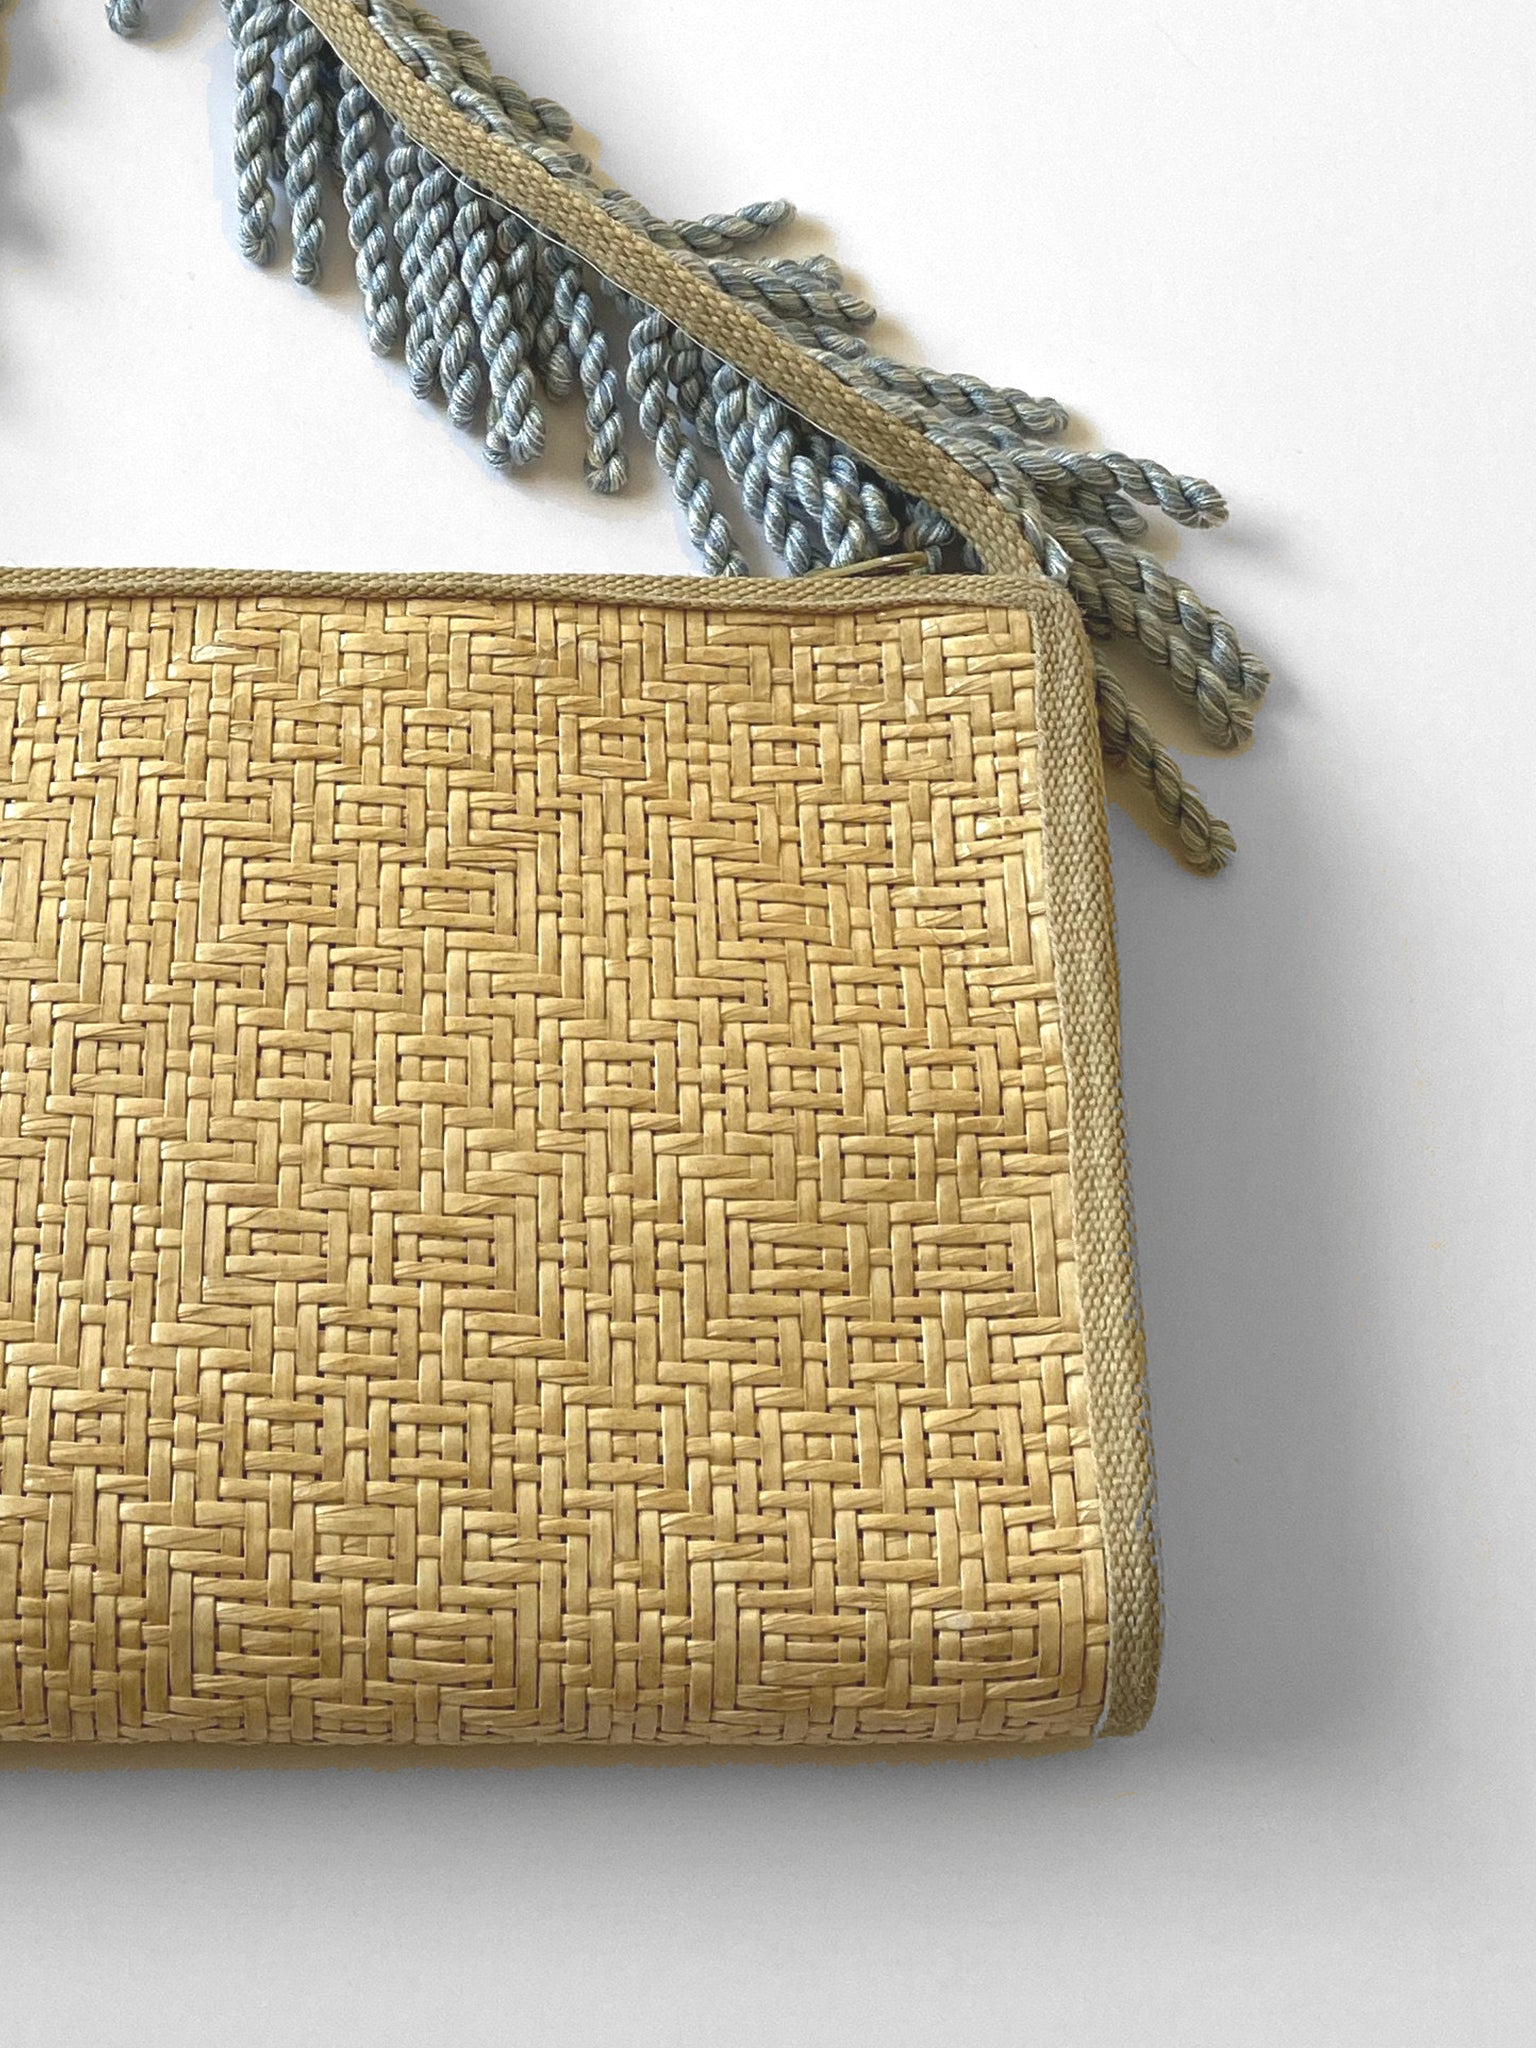 UP! - Vintage reworked straw crossbody